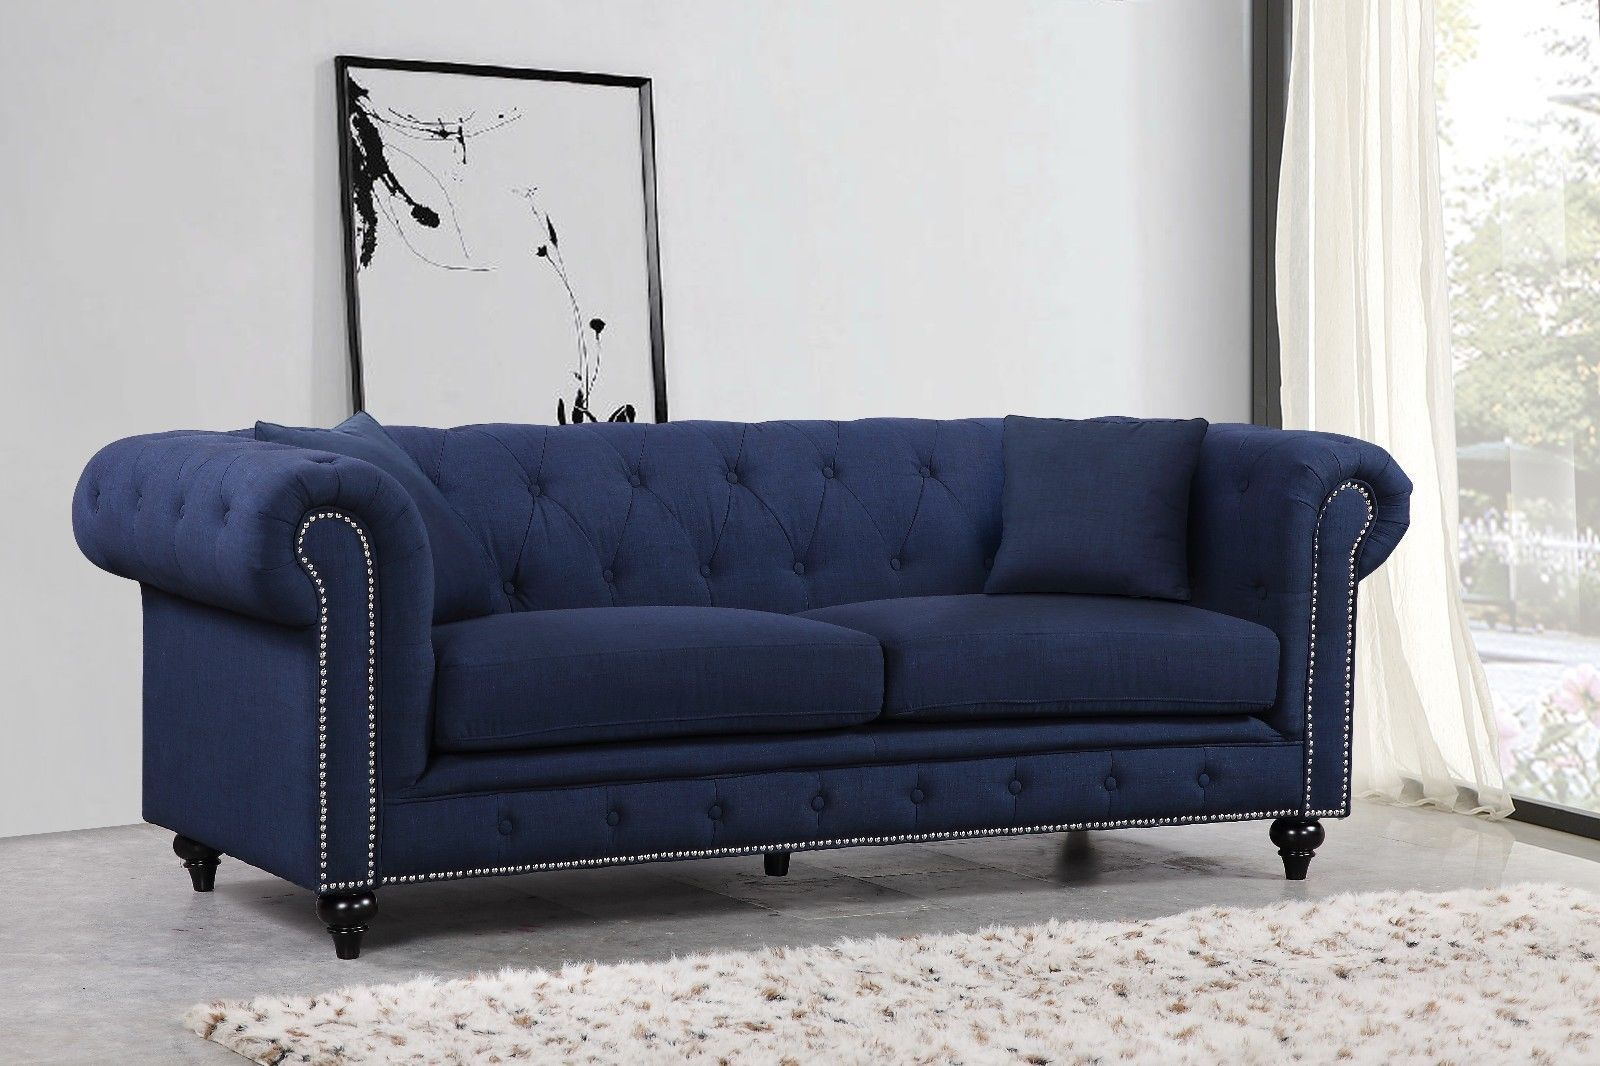 Meridian 662 Linen Fabric Living Room Sofa Set 3pc.Tufted Navy Traditional Style